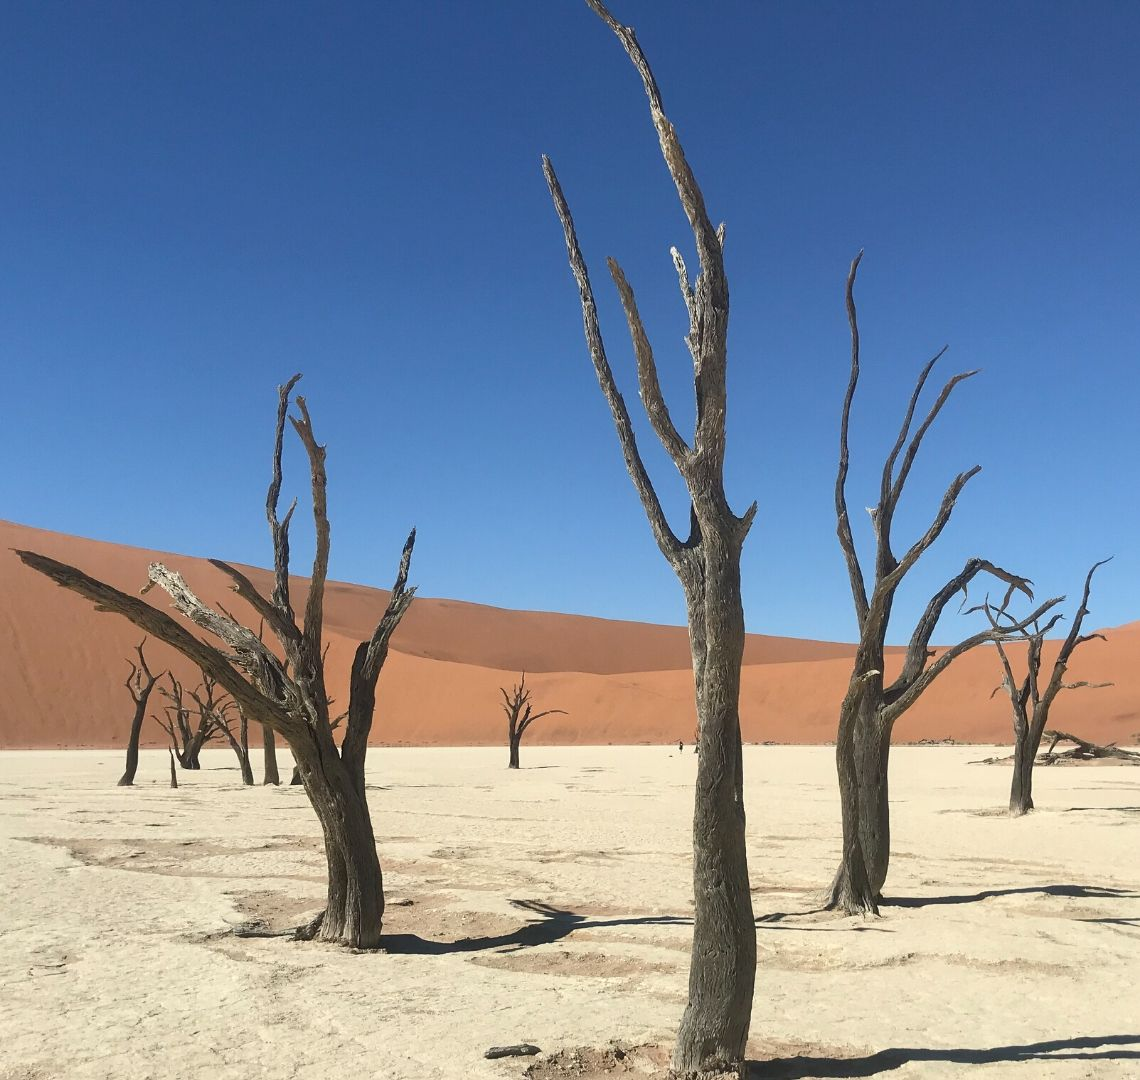 2 Week Namibia Itinerary - visiting Dead Vlei is a MUST! The trees are almost black as a stark contrast to the white salt pan, red sand dunes and bright blue sky